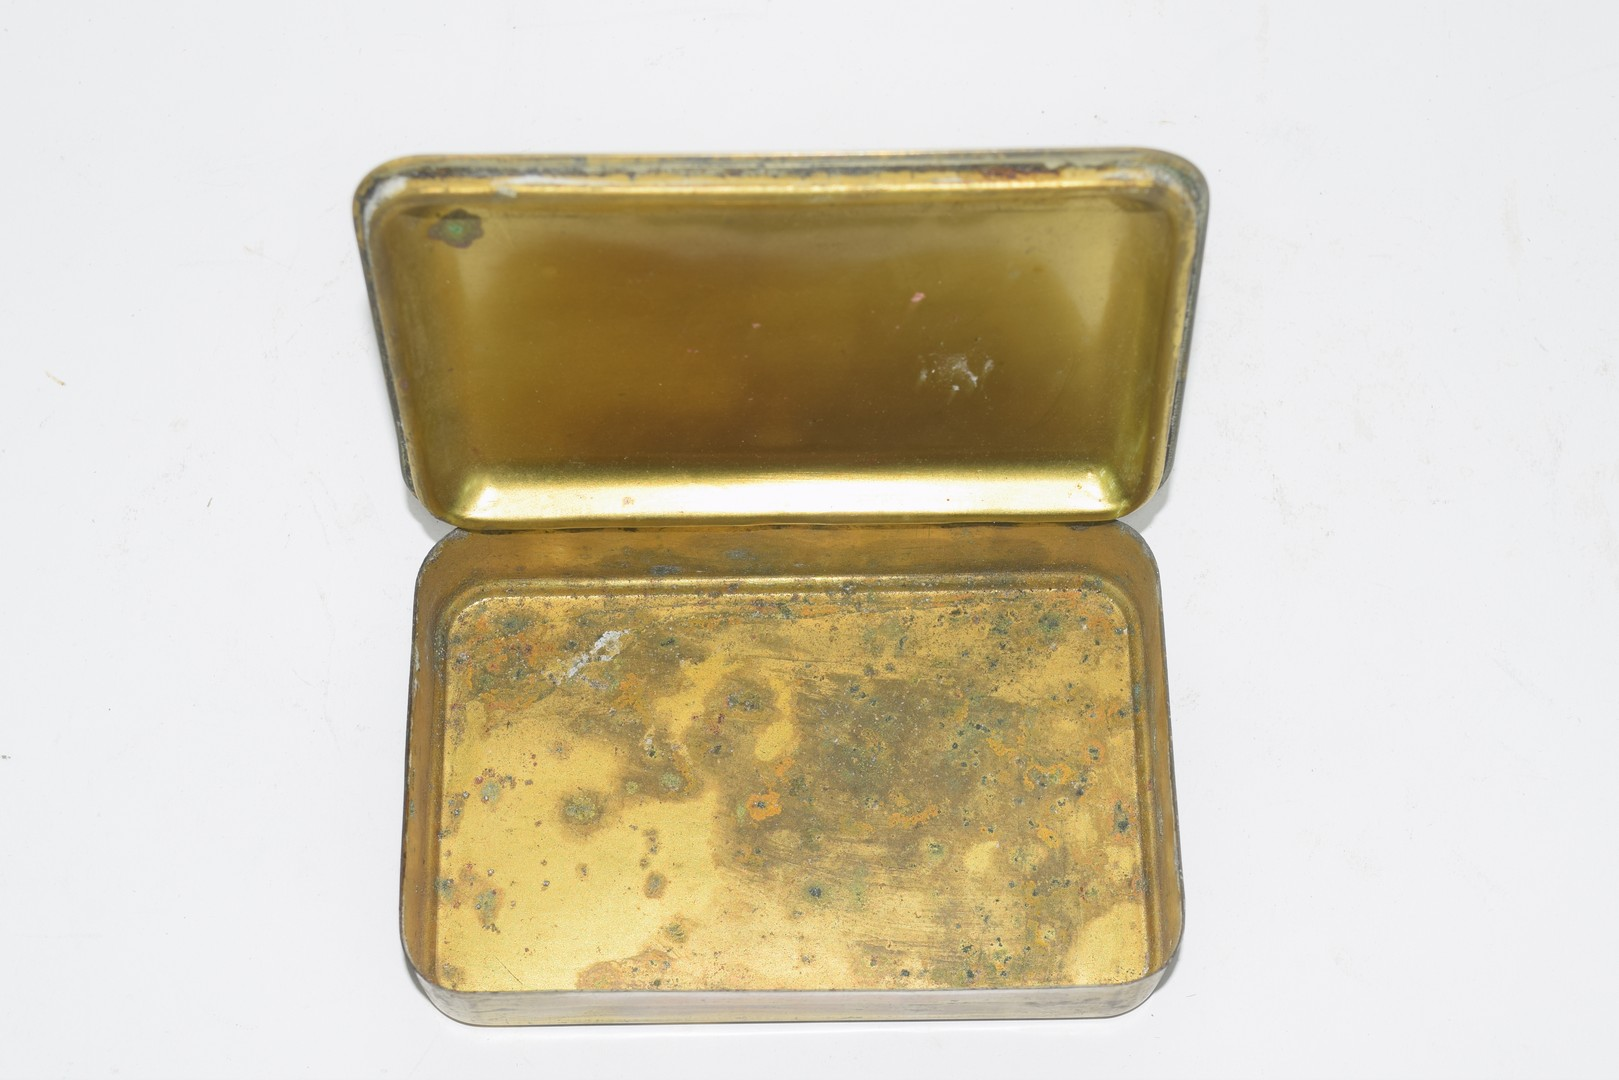 WWI Christmas 1914 brass tobacco tin - Image 2 of 2